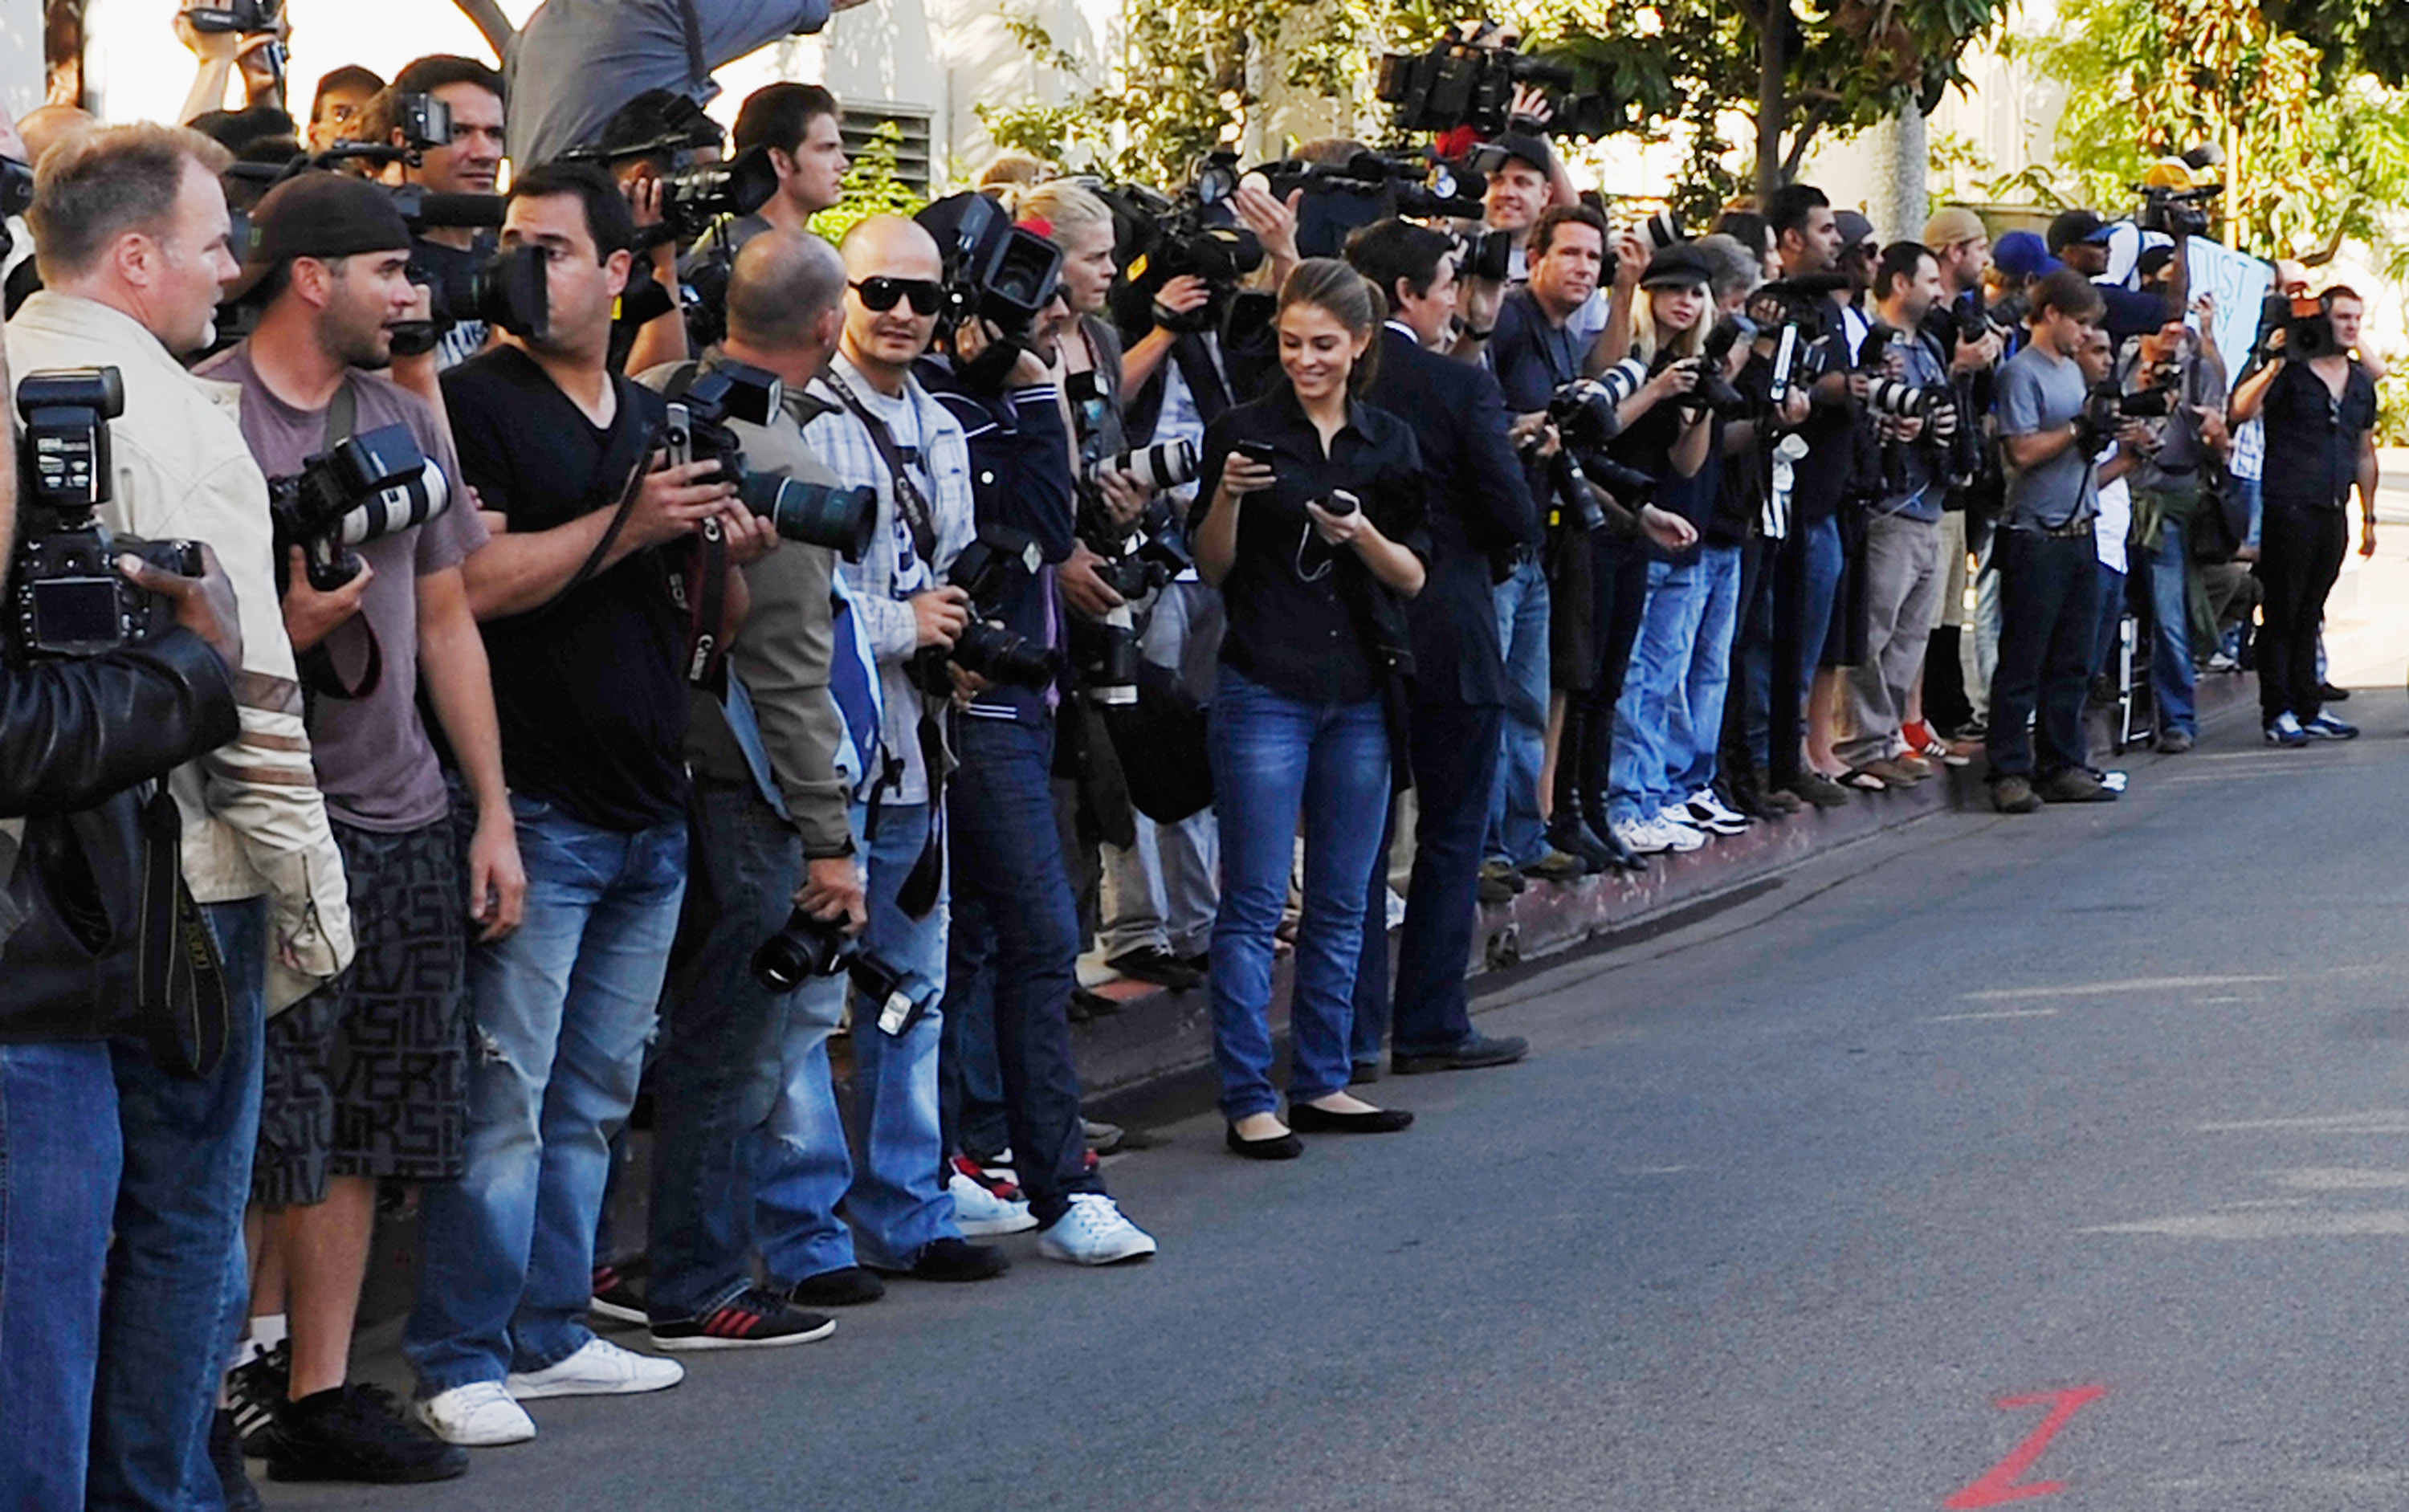 A large group of press photographers stand outside waiting for an event.